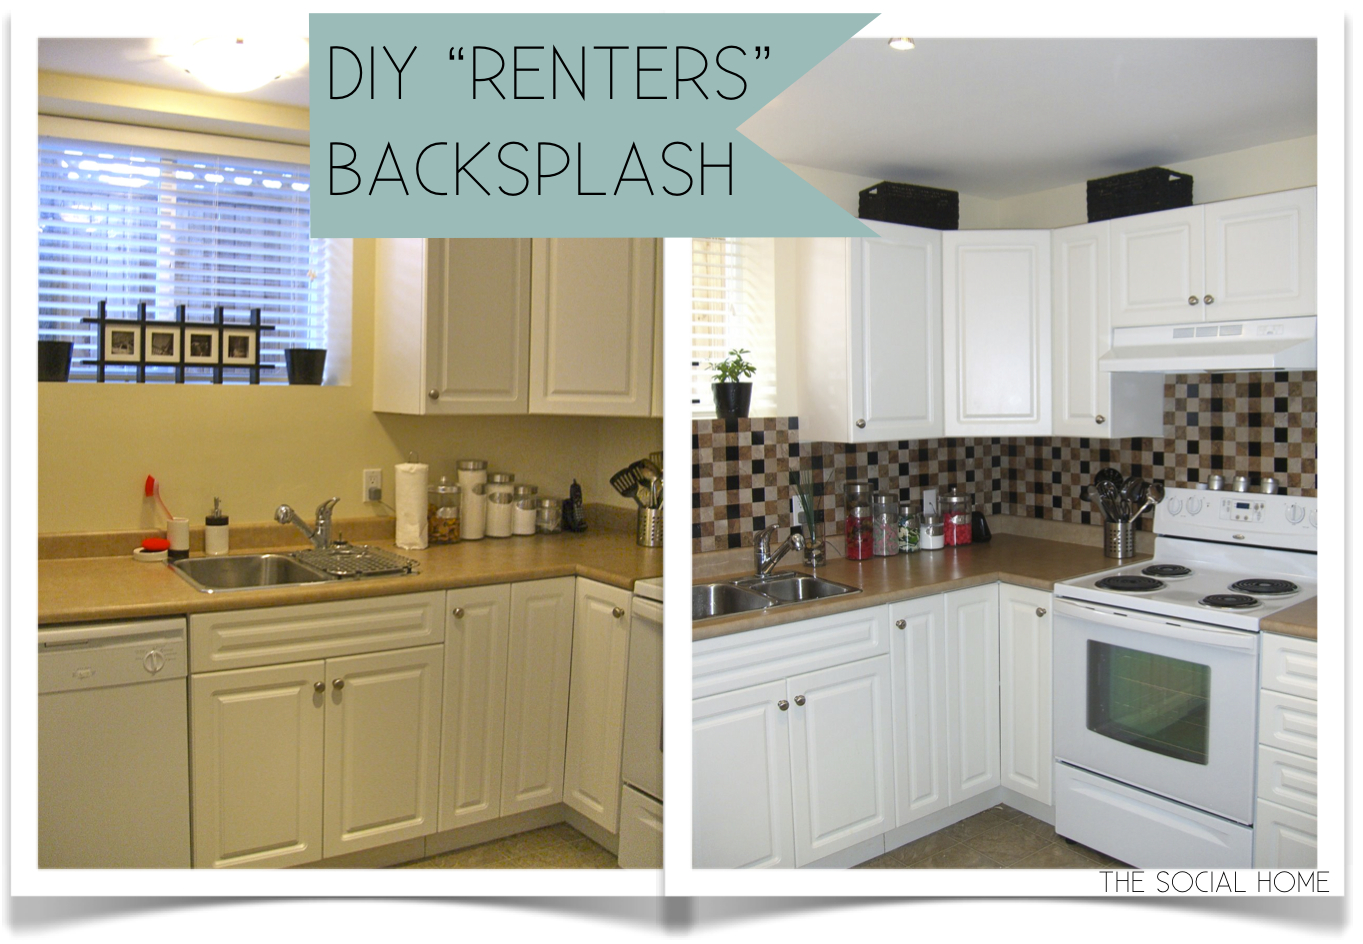 Diy renters backsplash with vinyl tile dailygadgetfo Choice Image